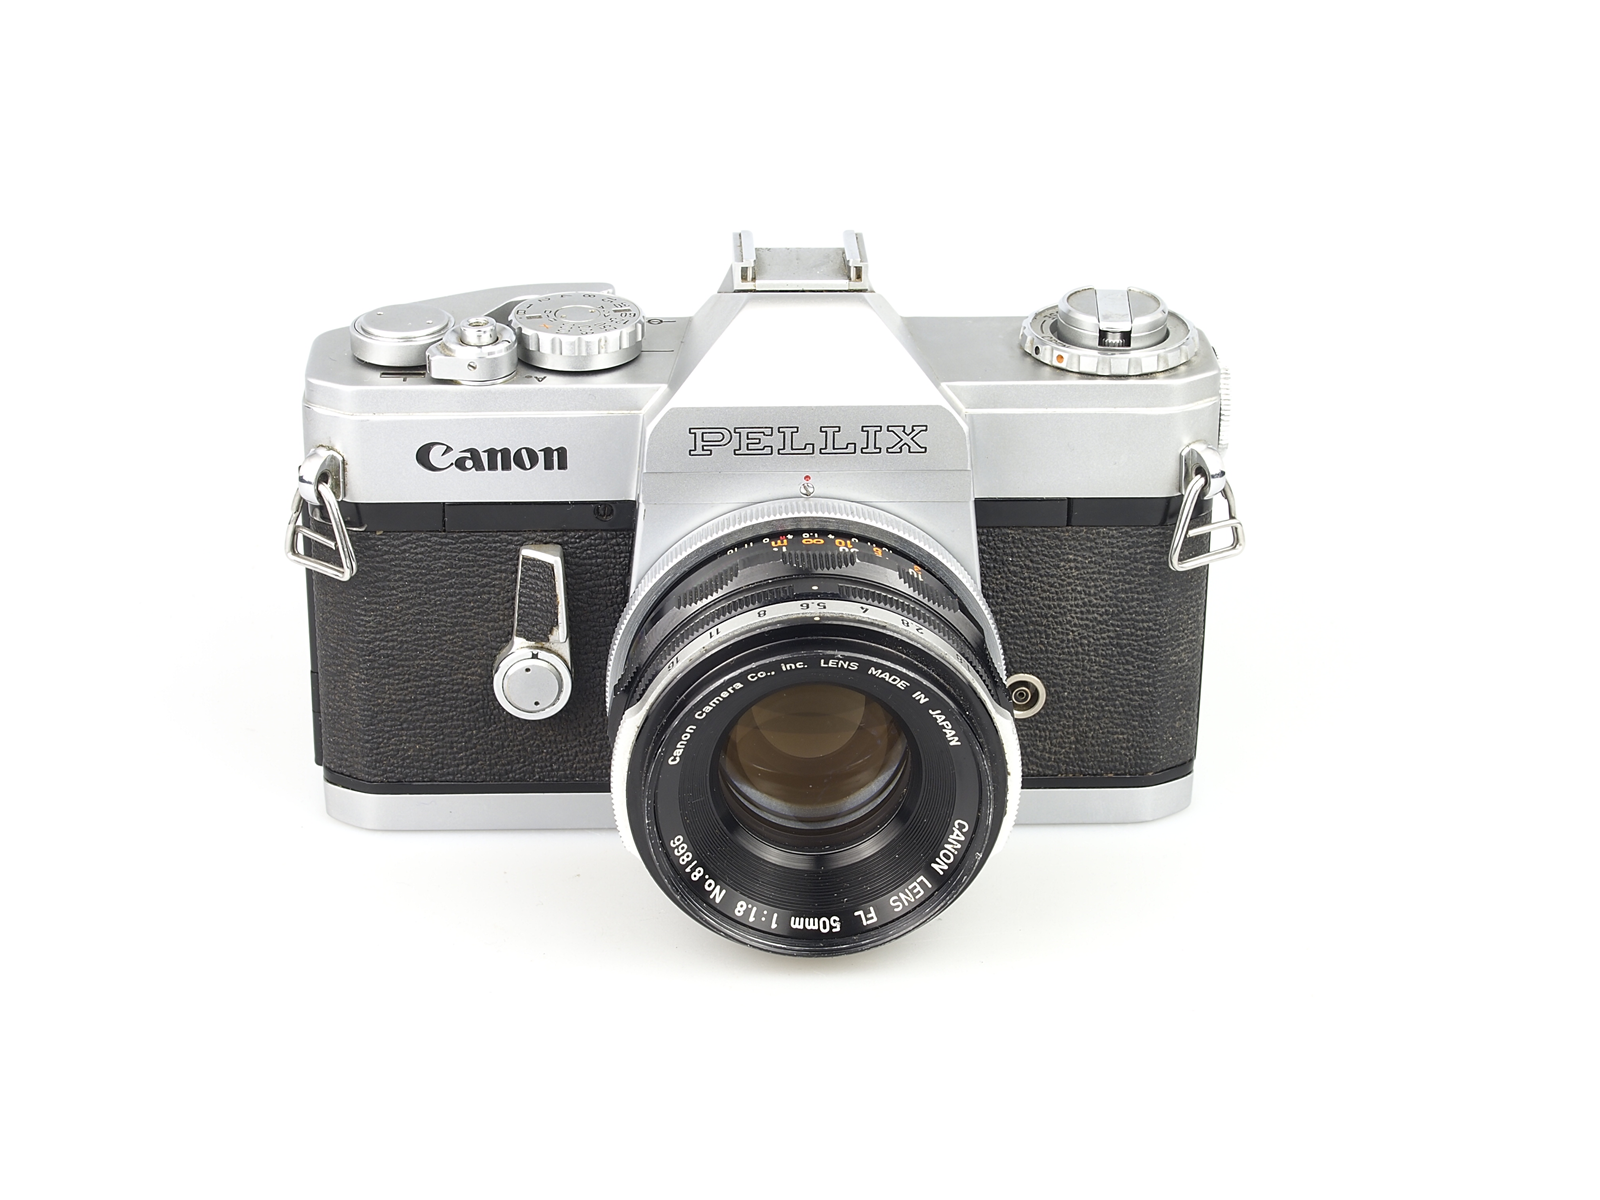 Canon Pellix (Japan, 1965)